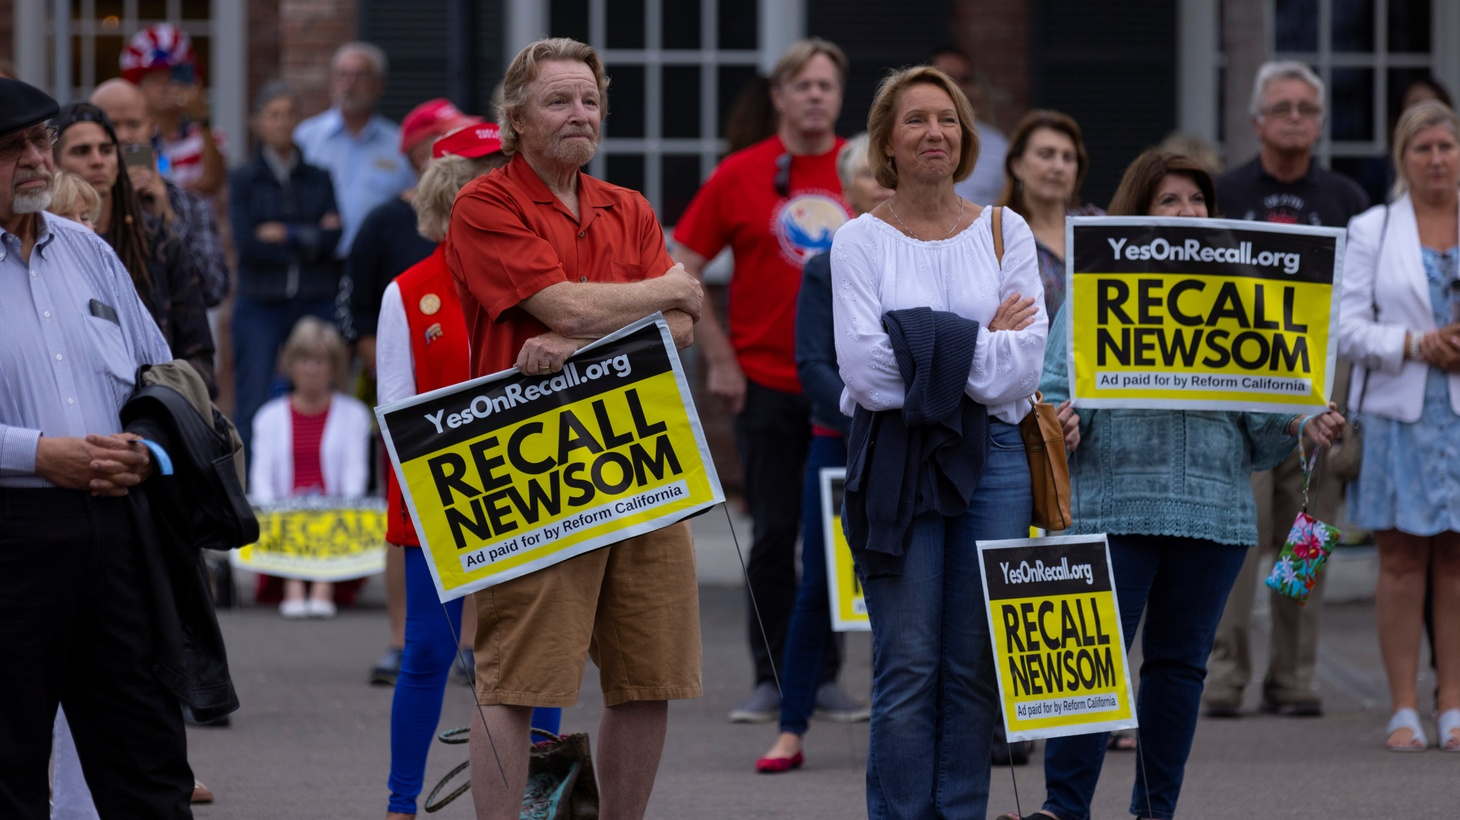 Supporters of the recall campaign of California Governor Gavin Newsom hold signs at a rally and information session in Carlsbad, California, U.S., June 30, 2021.